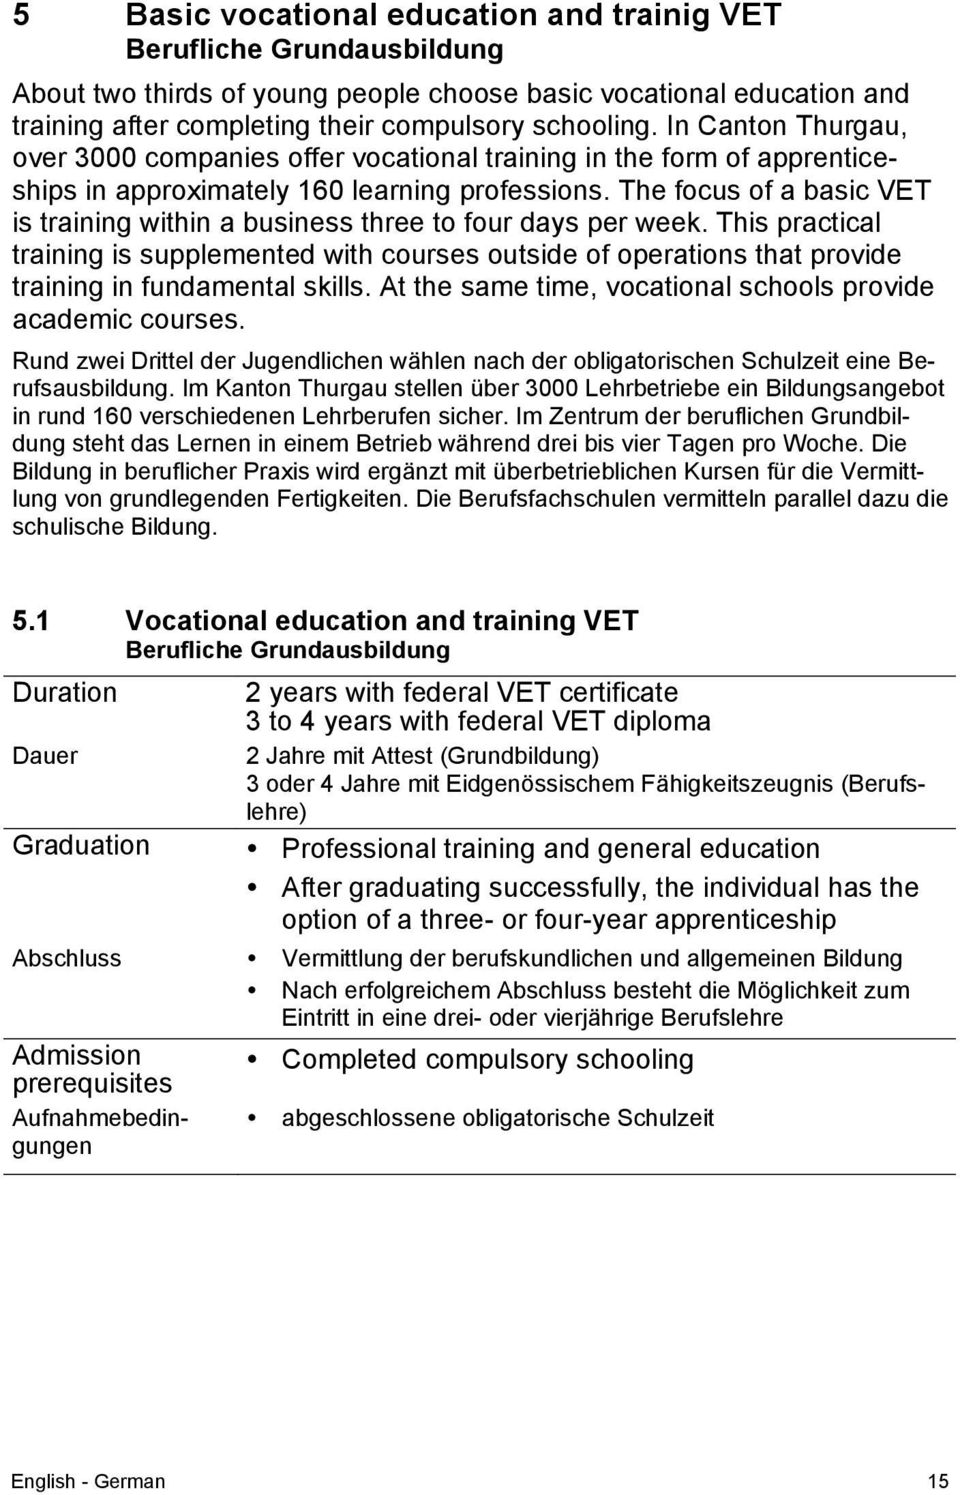 The focus of a basic VET is training within a business three to four days per week.